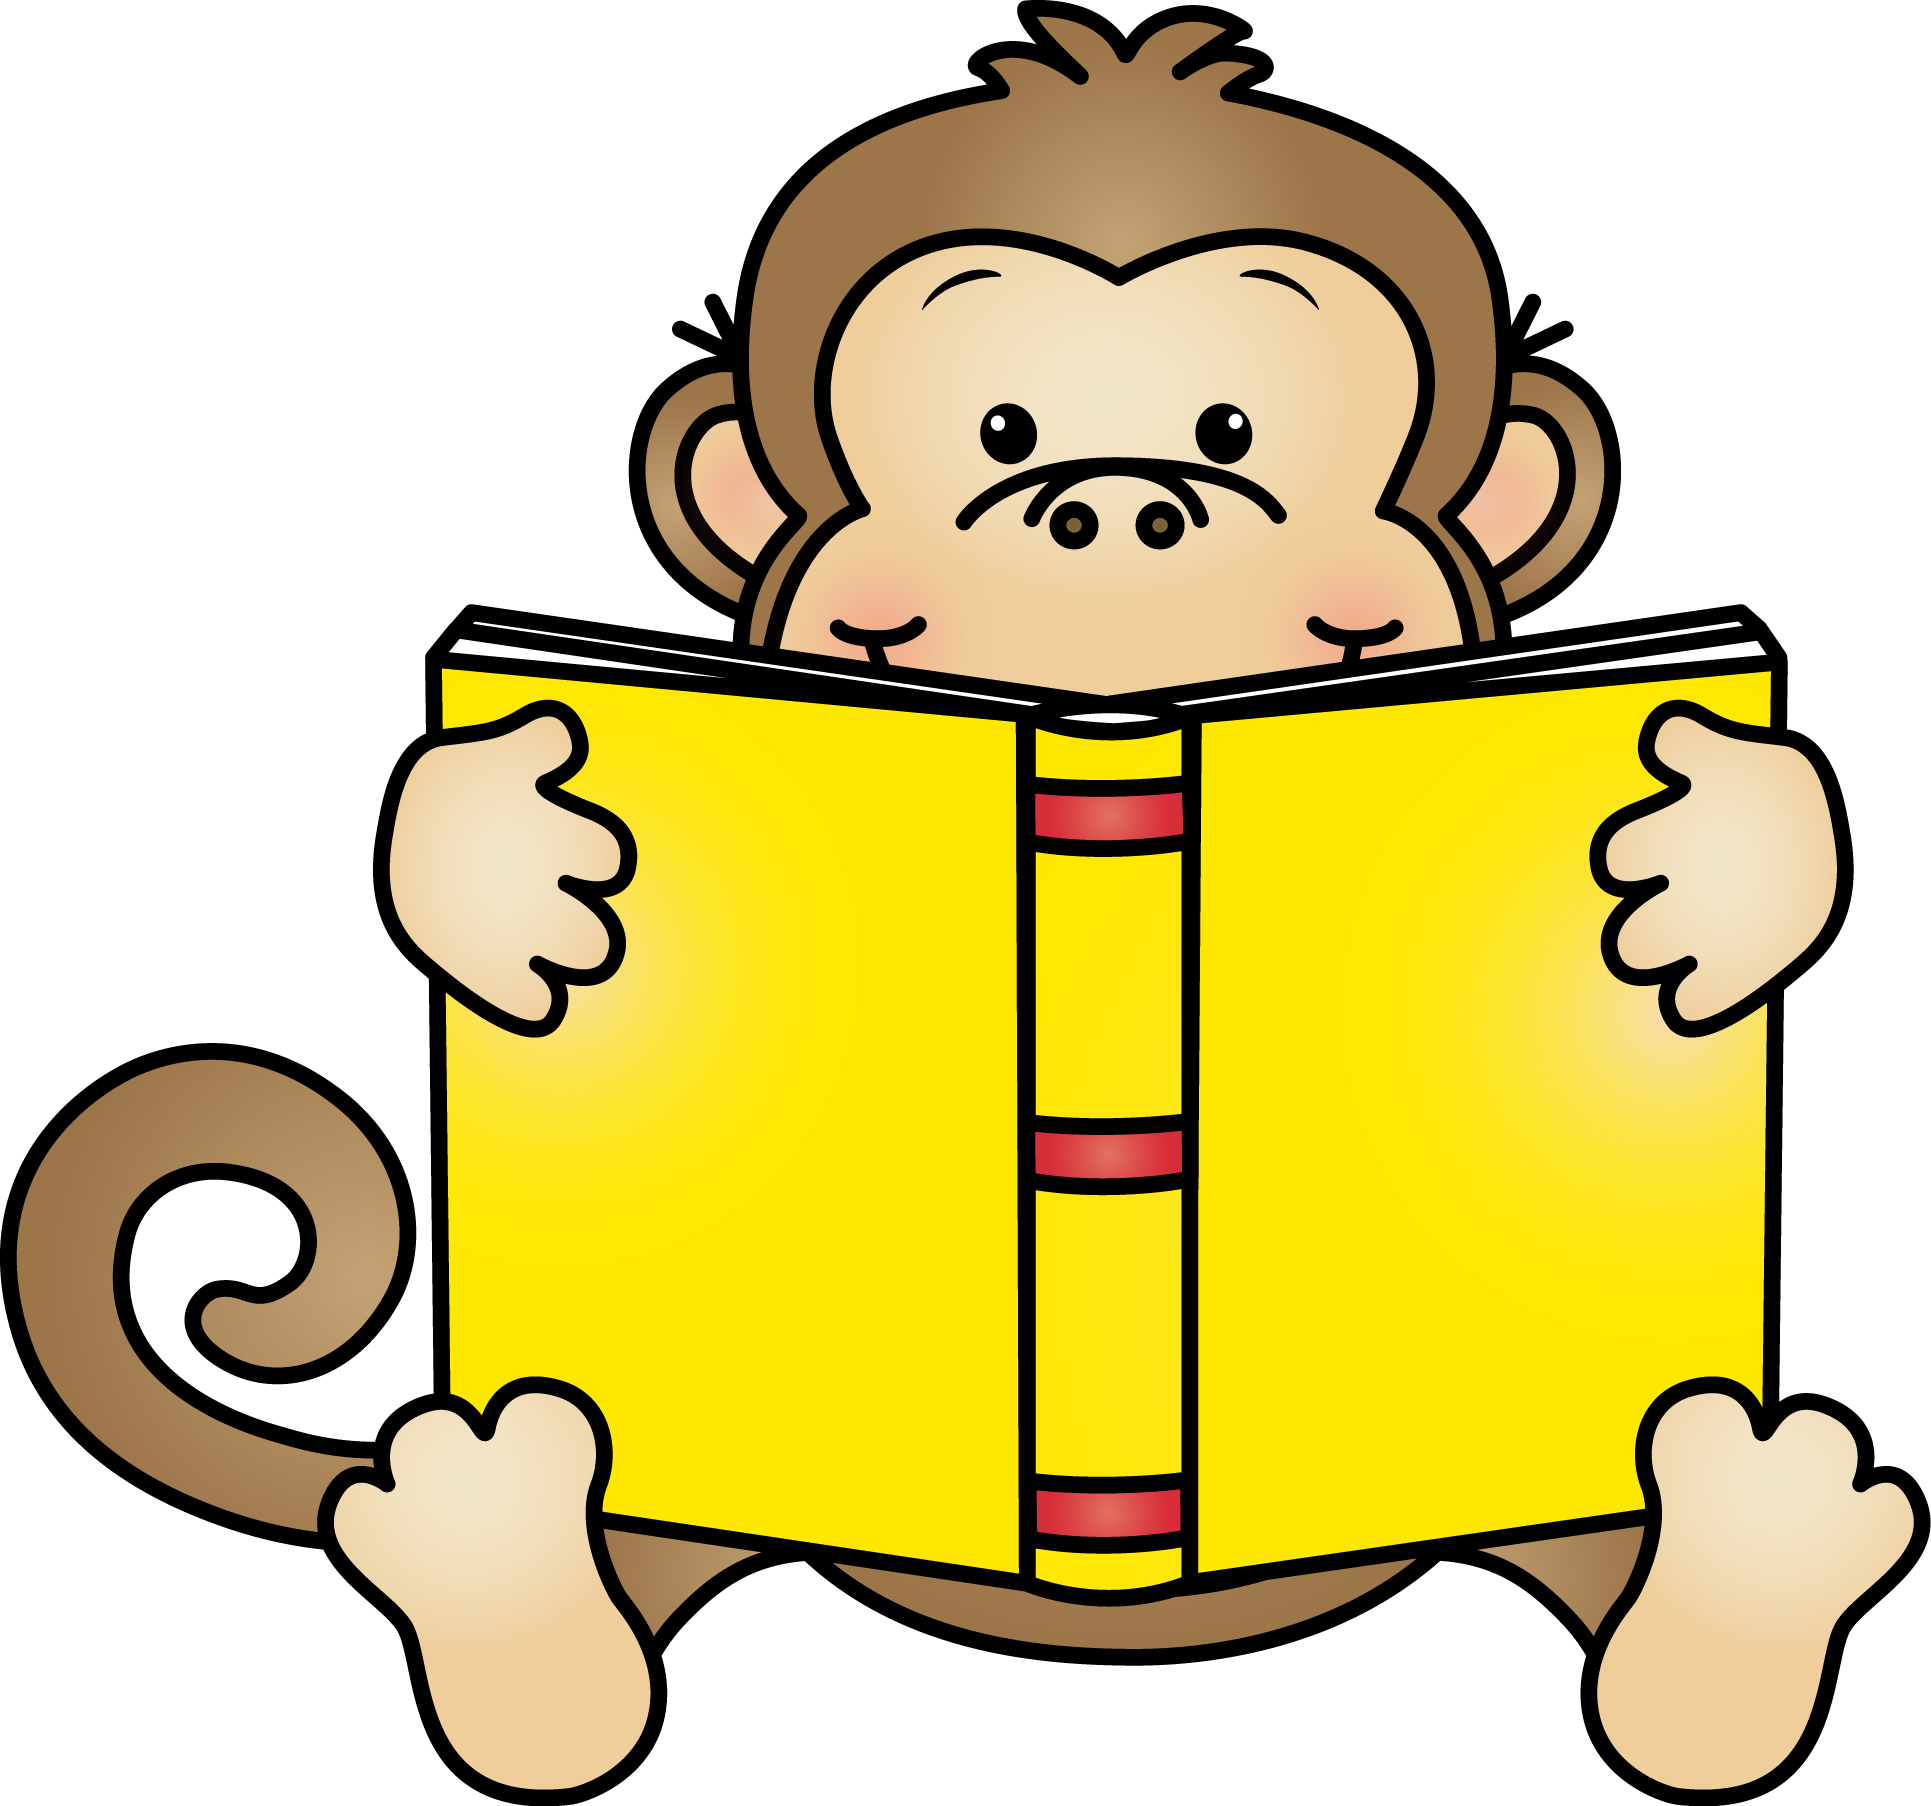 Monkey reading clipart clipart images gallery for free.